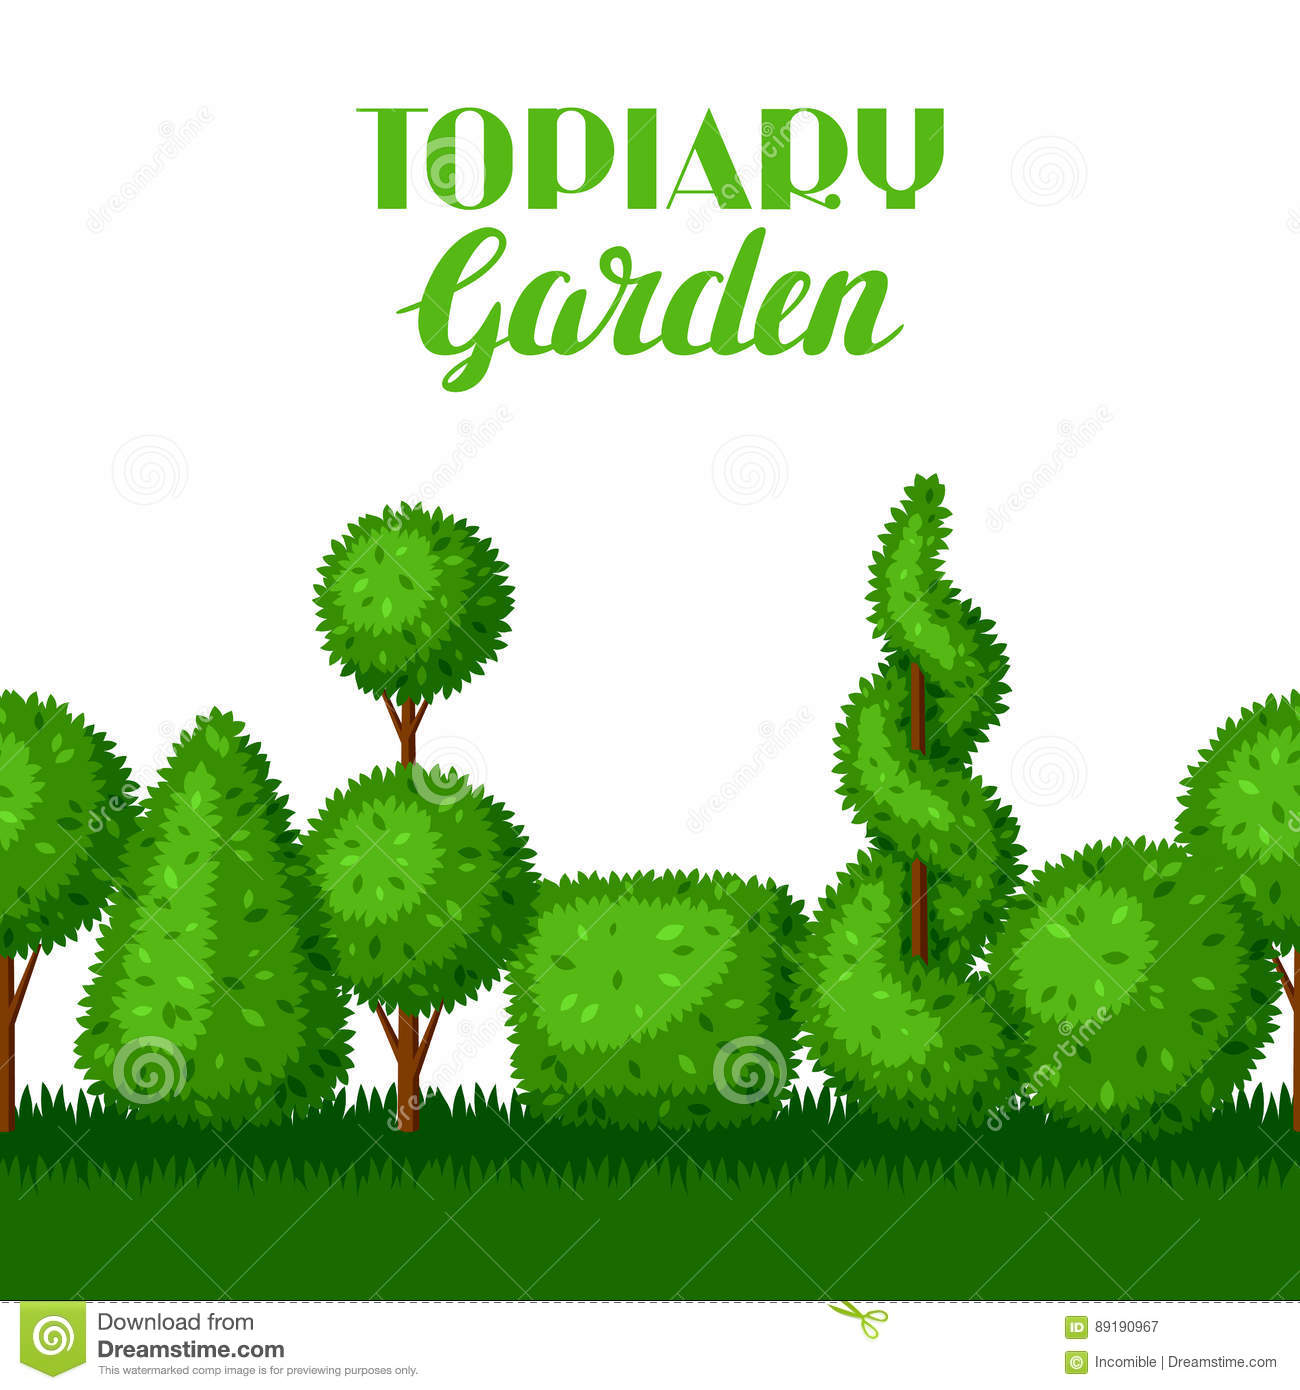 Boxwood Topiary Garden Plants Seamless Border With Decorative Trees Stock Vector Illustration Of Flora Leisure 89190967